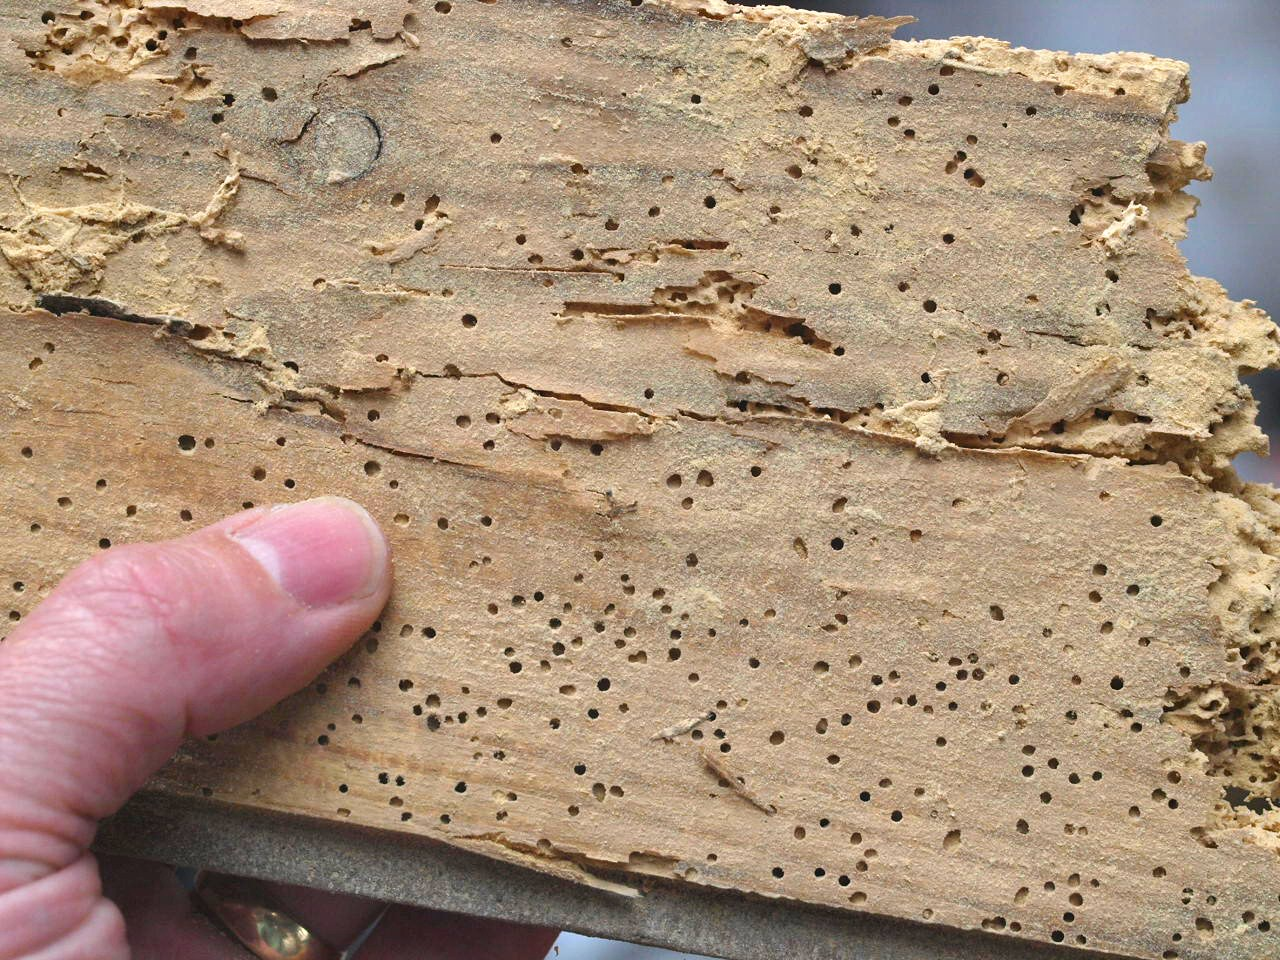 heavy infestation of Woodworm in a floorboard removed from a house in Leeds  in Leeds - Guide On Identifying Woodworm And Making A Judgement On Activity